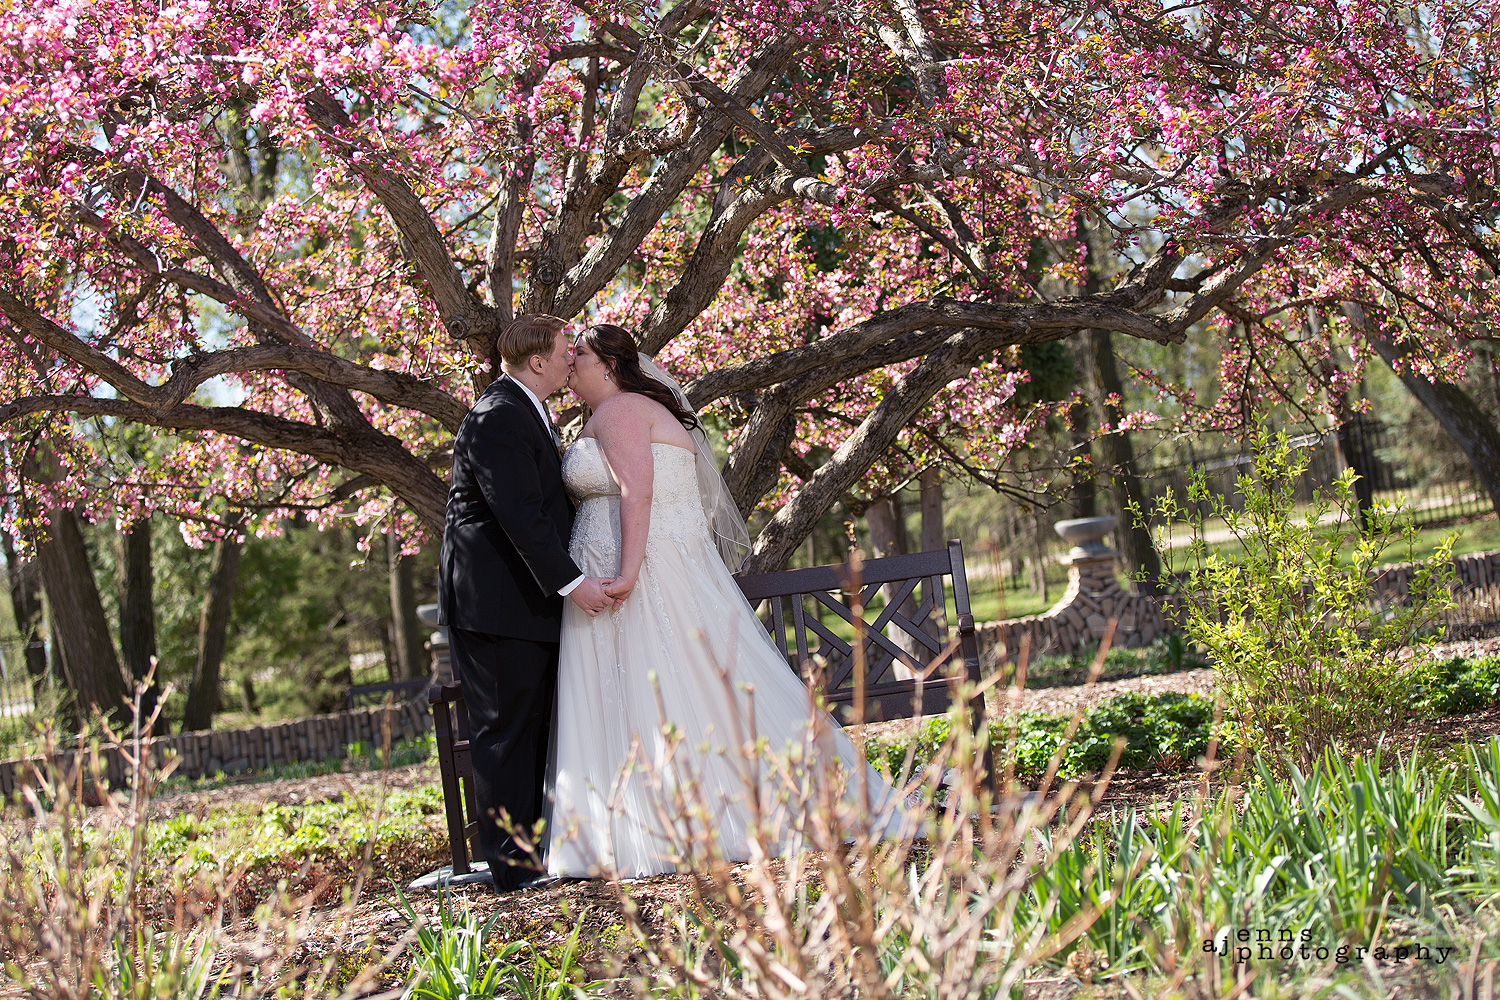 Kissing under the amazing pink tree in the English Gardens